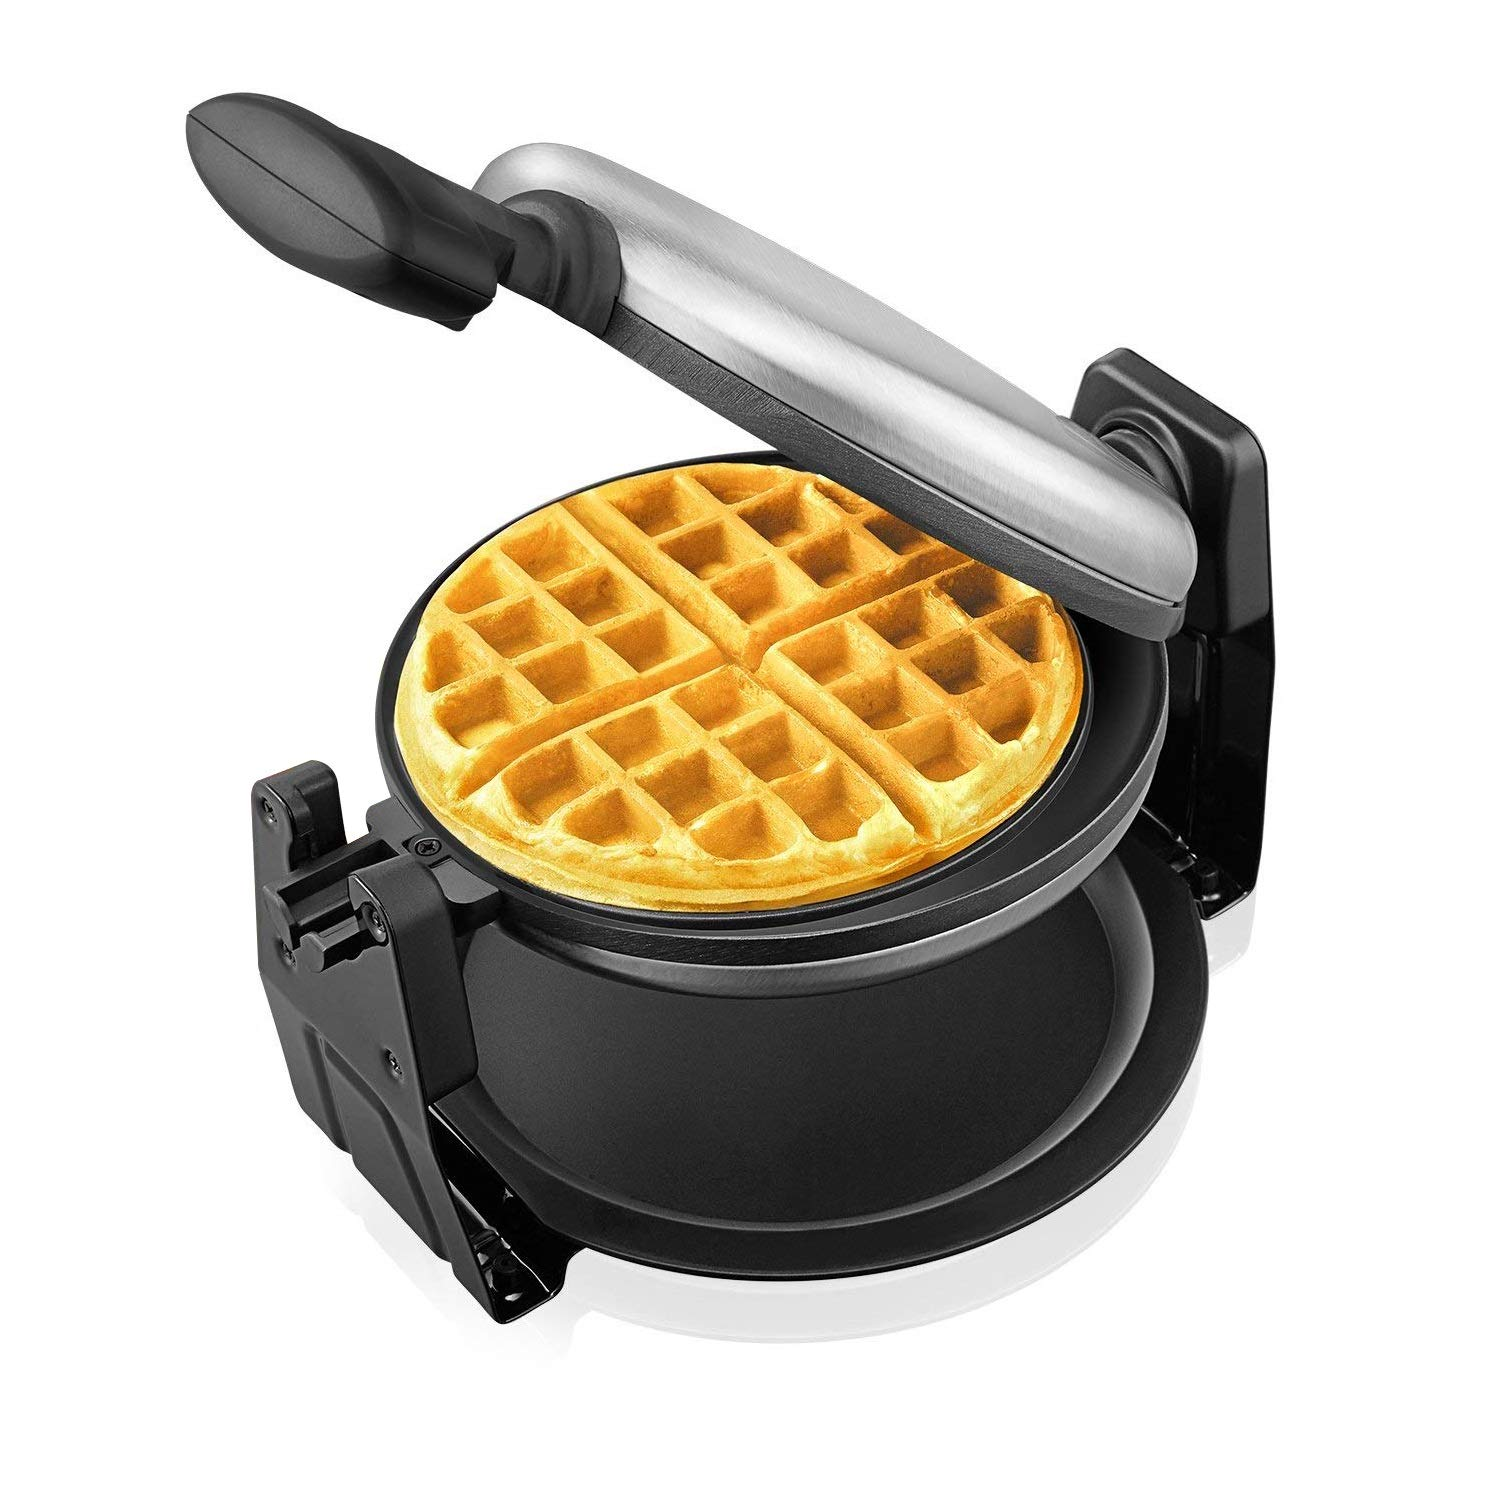 Belgian Waffle Maker Aicok, Stainless Steel Rotatable Waffle Iron, 180 Degree Rotation, Non-sticking Plates, Leak-proof Chassis, Double-sided Uniform Heating, Quick & Easy